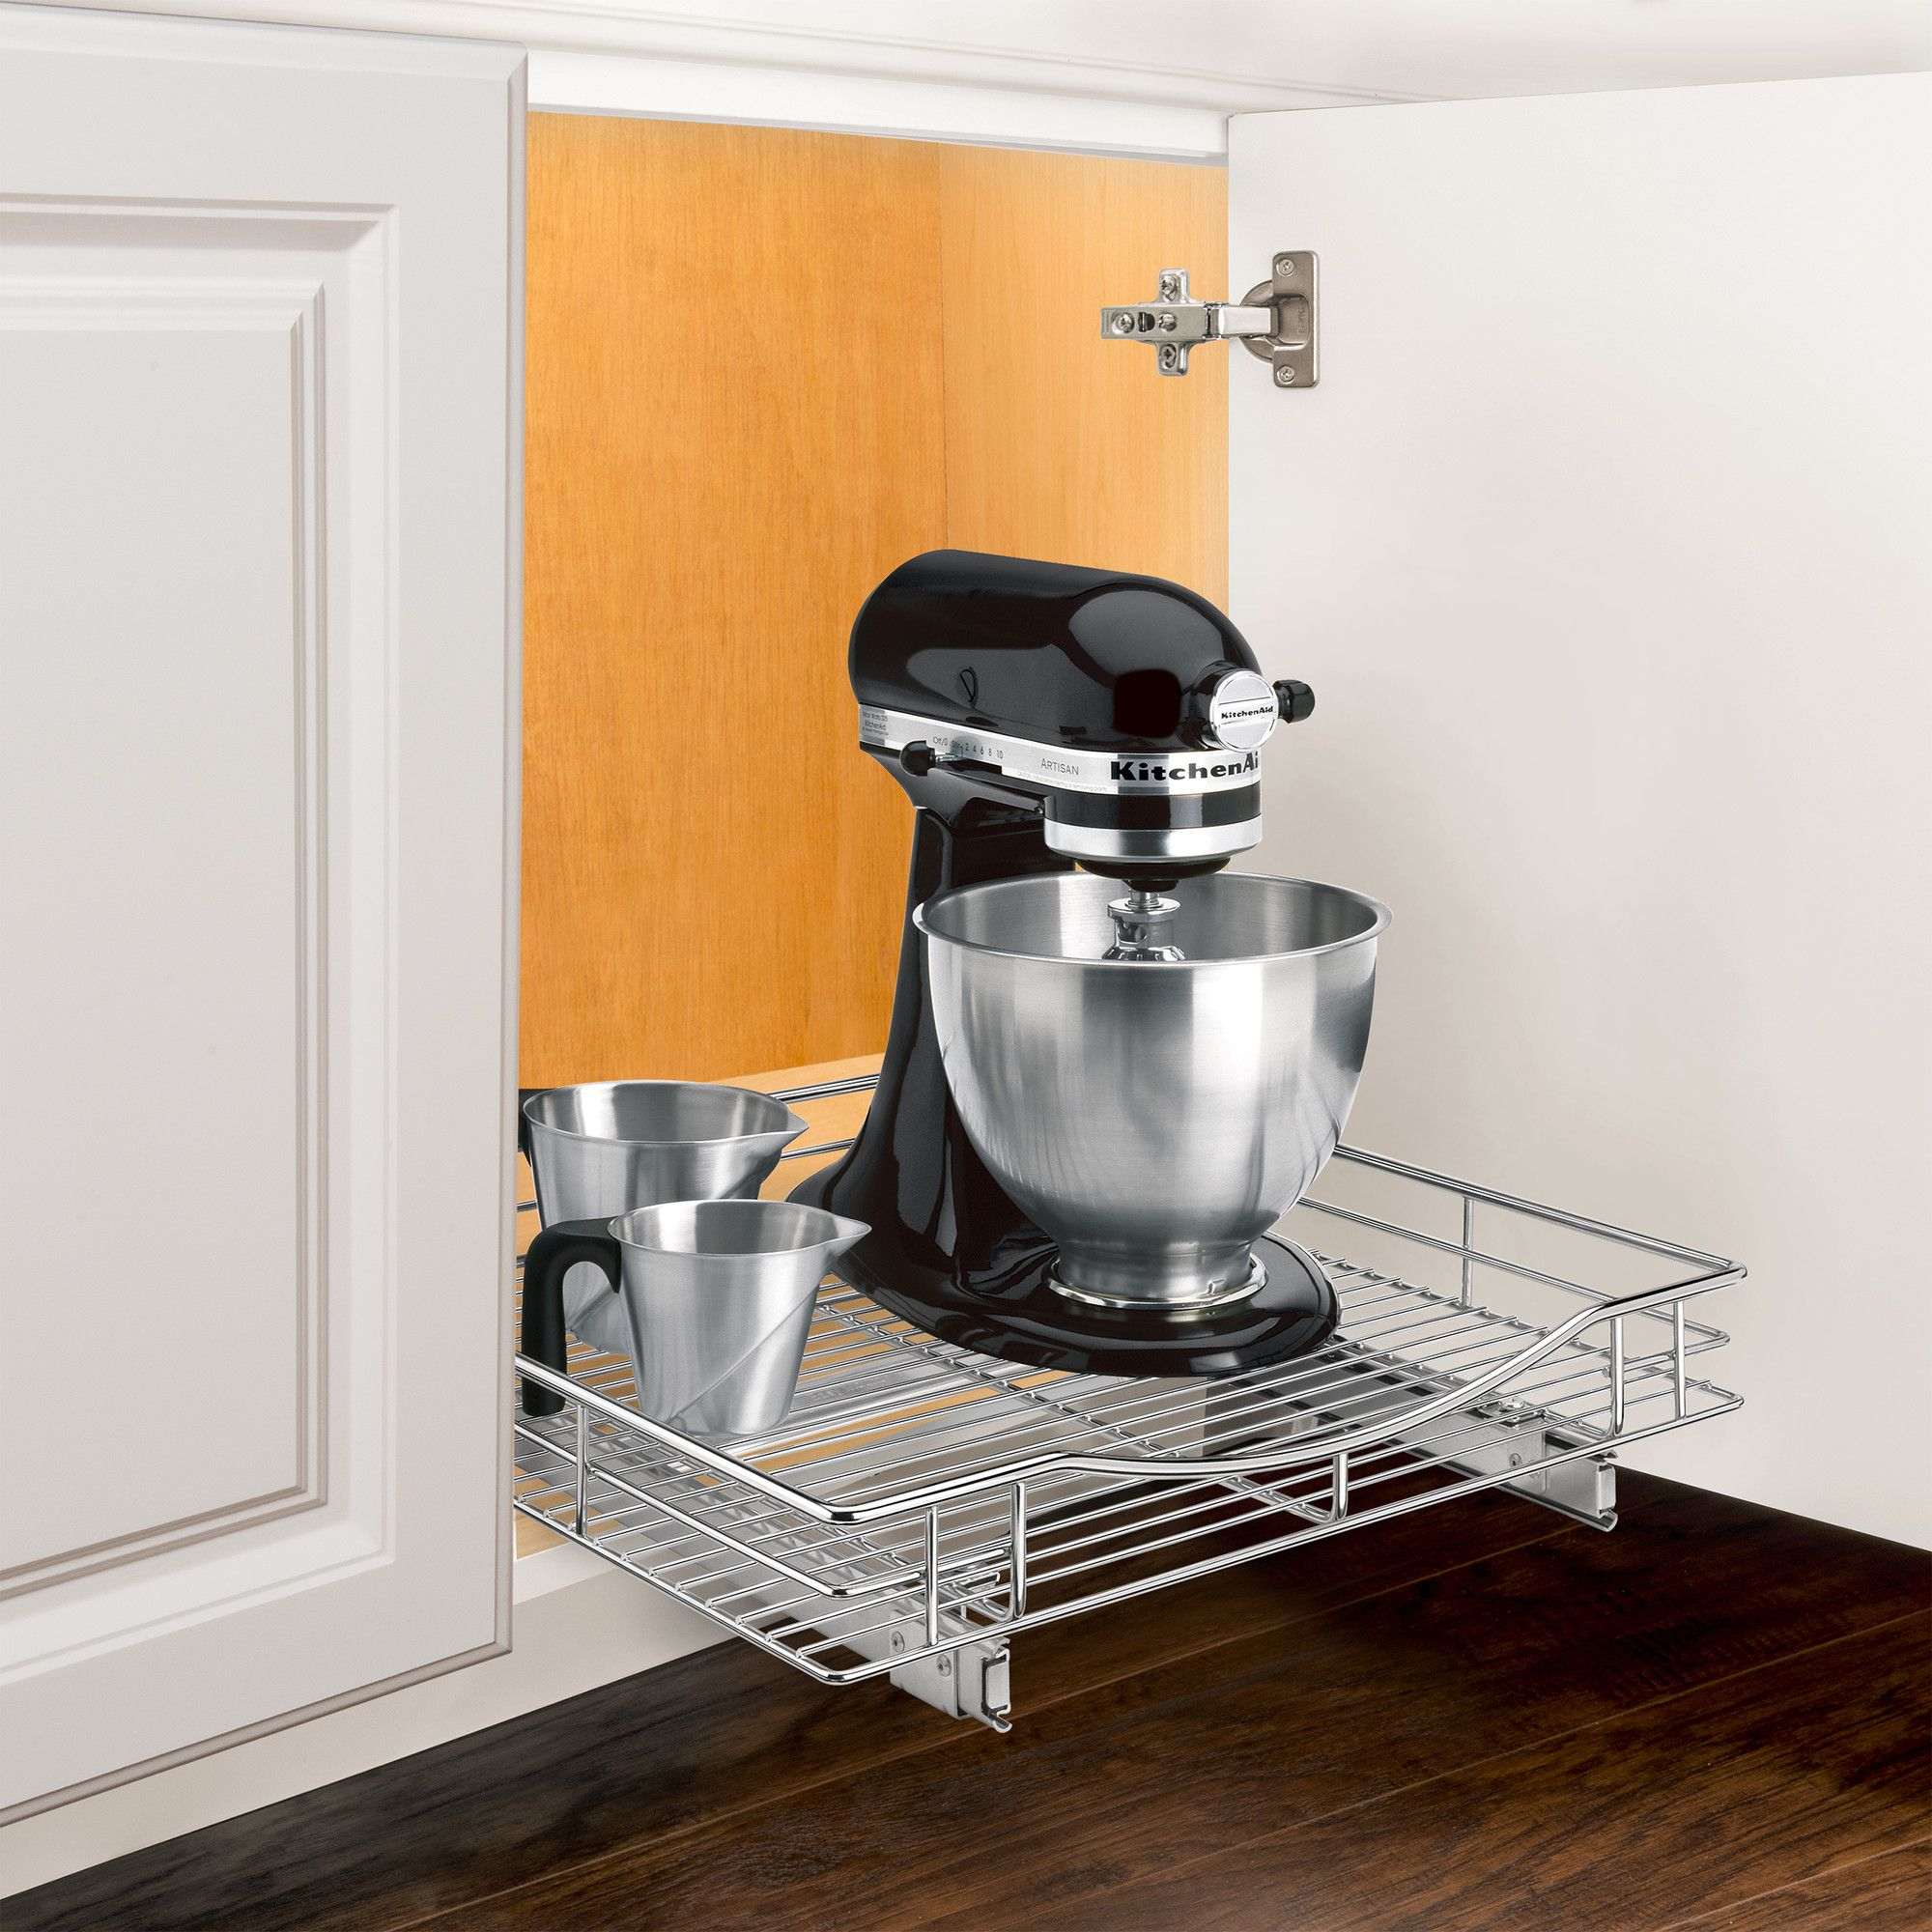 Roll Out Cabinet Organizer   Pull Out Drawer   Under Cabinet Sliding Shelf    20 Inch Wide X 21 Inch Deep   Chrome